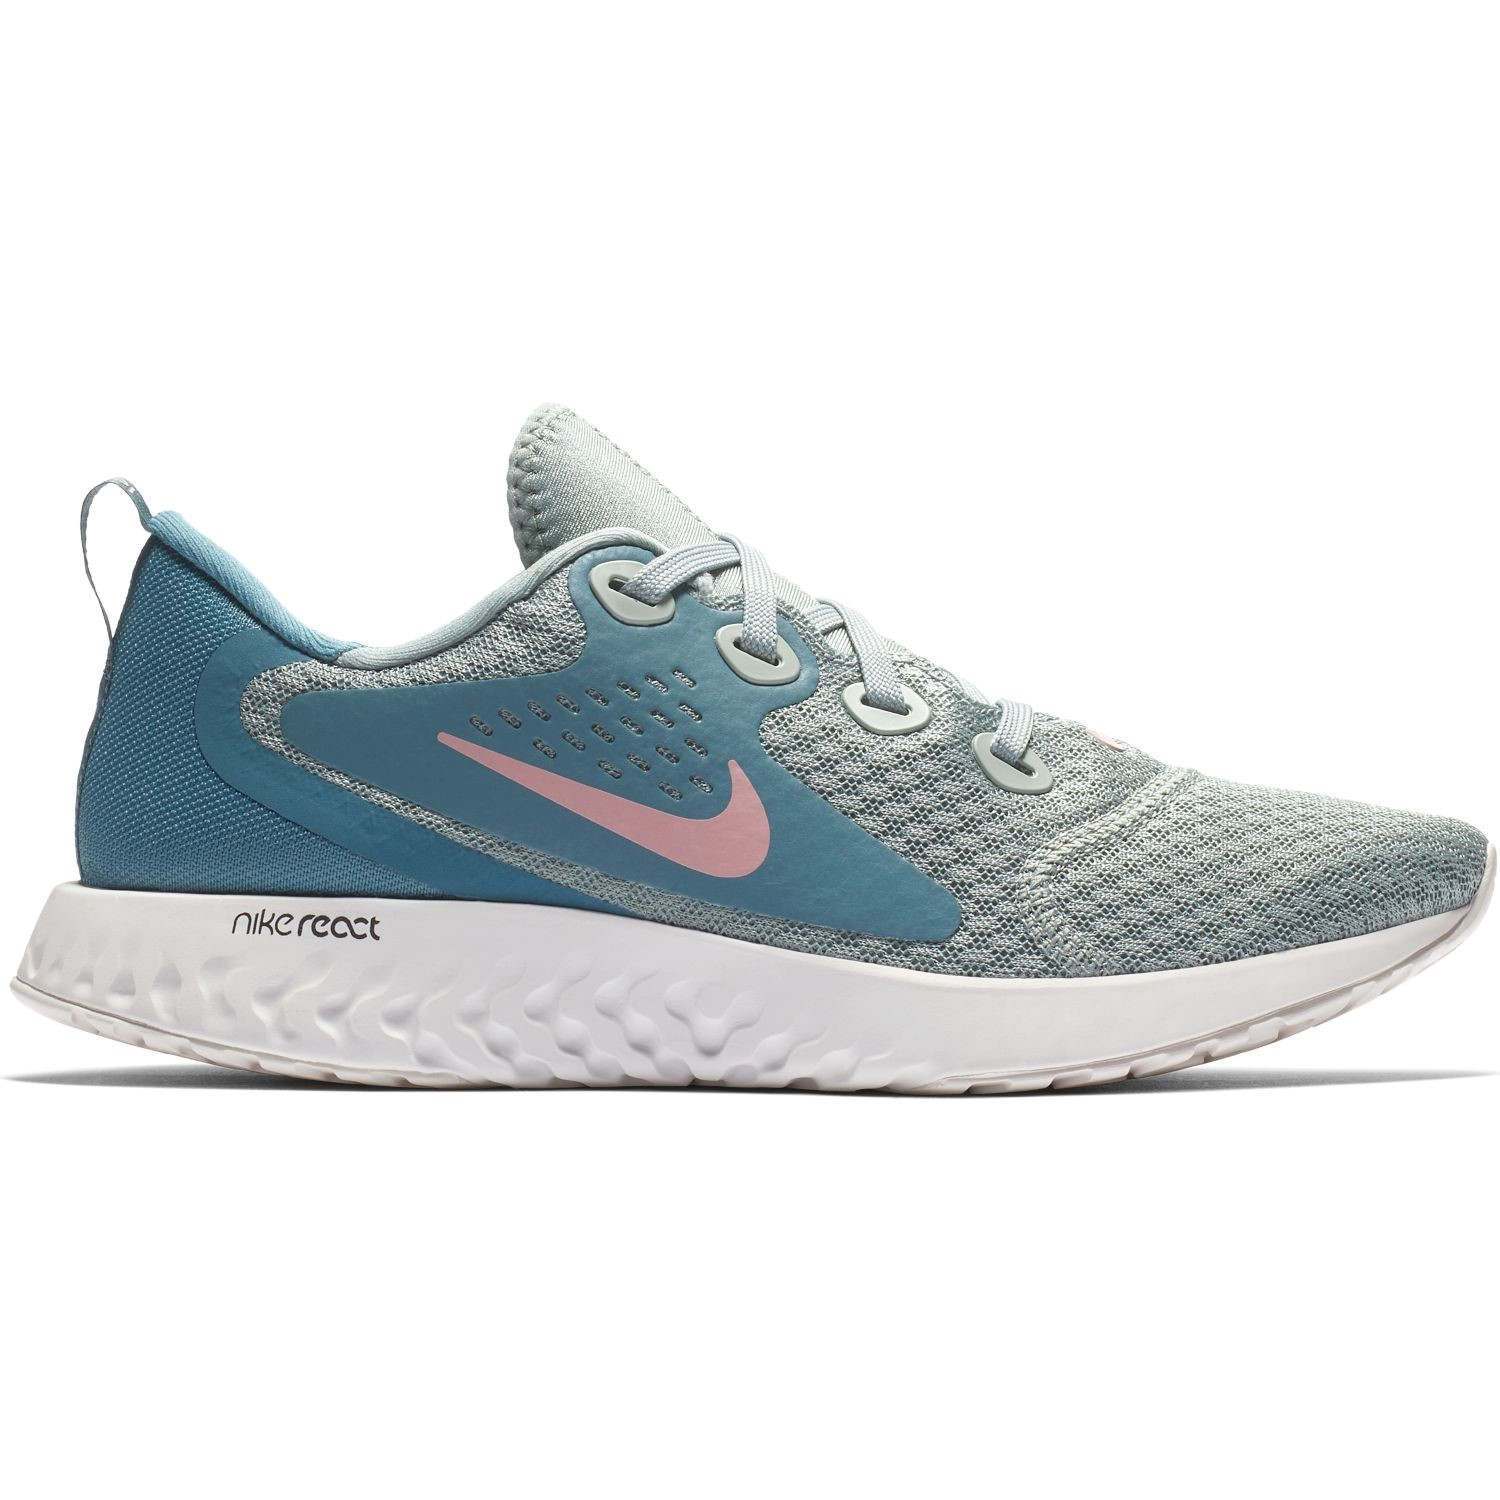 hot sale online 191cb c9b8c Nike Legend React - Womens Running Shoes - Mica Green Celestial Teal Rust  Pink